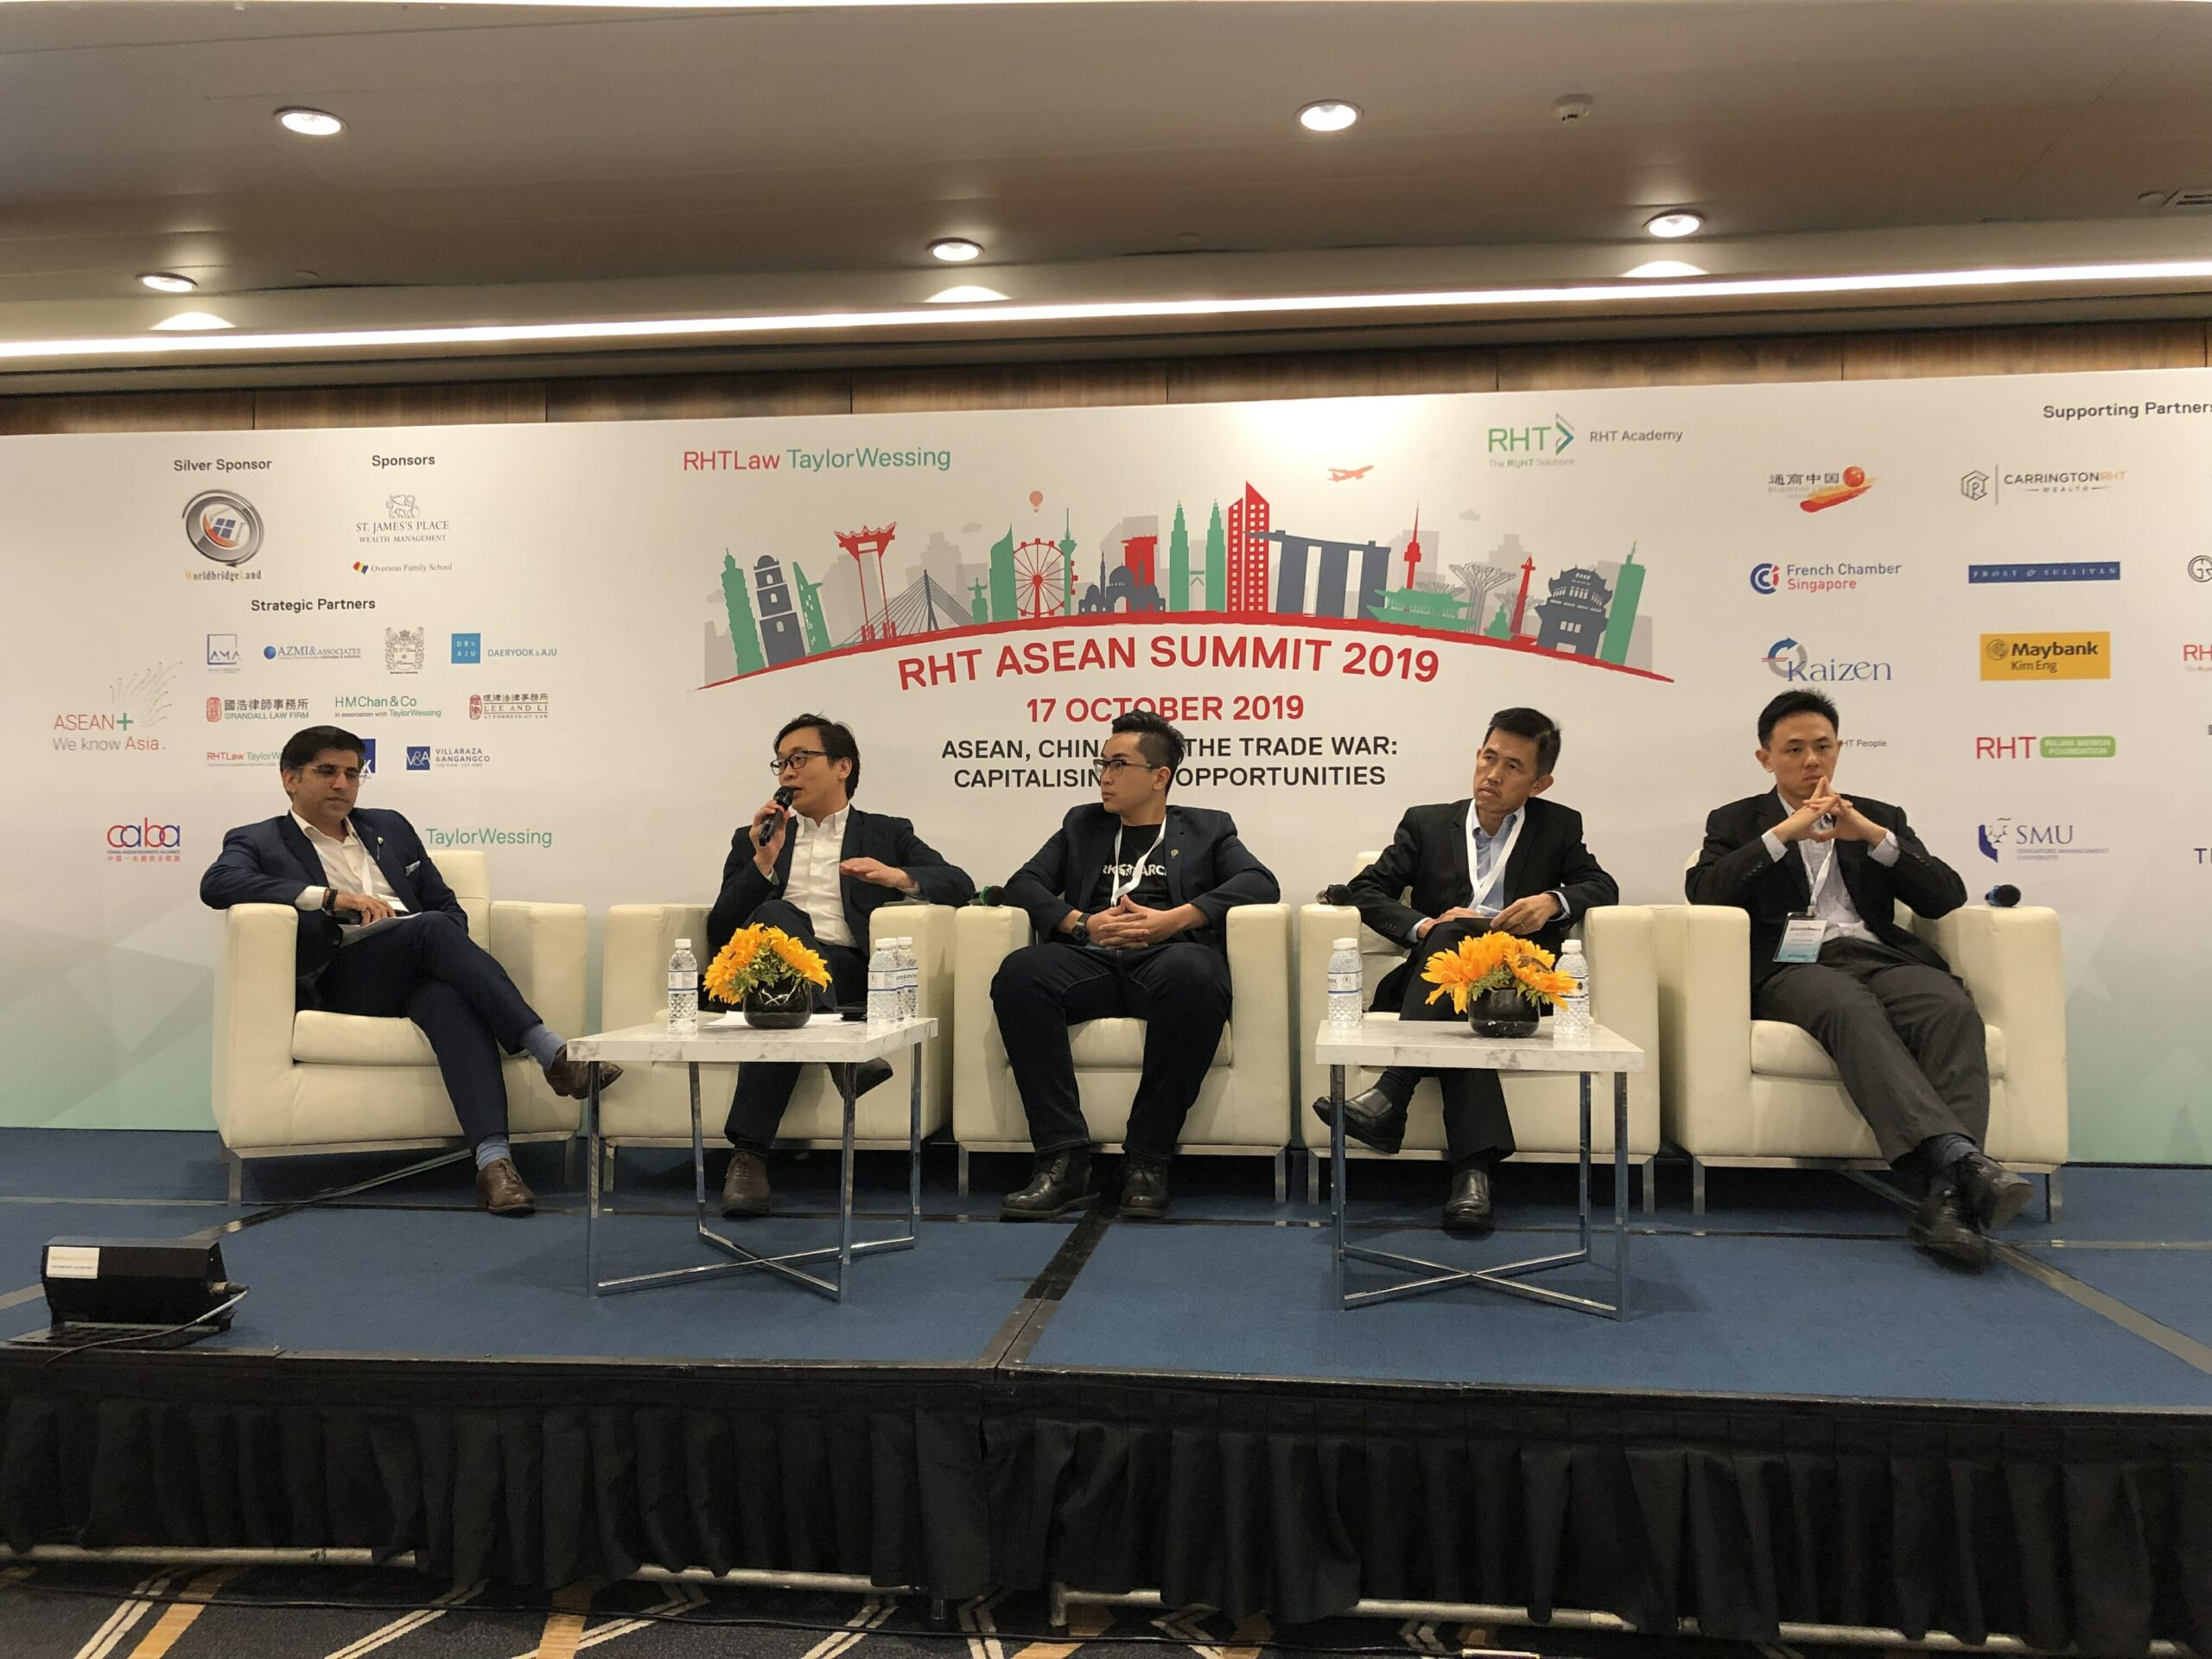 , Catching Up with Anndy Lian, Inter-Governmental Blockchain Advisor at the Singapore Fintech and Blockchain Week 2019, Blockcast.cc- Blockchain, DLT, Crypto News